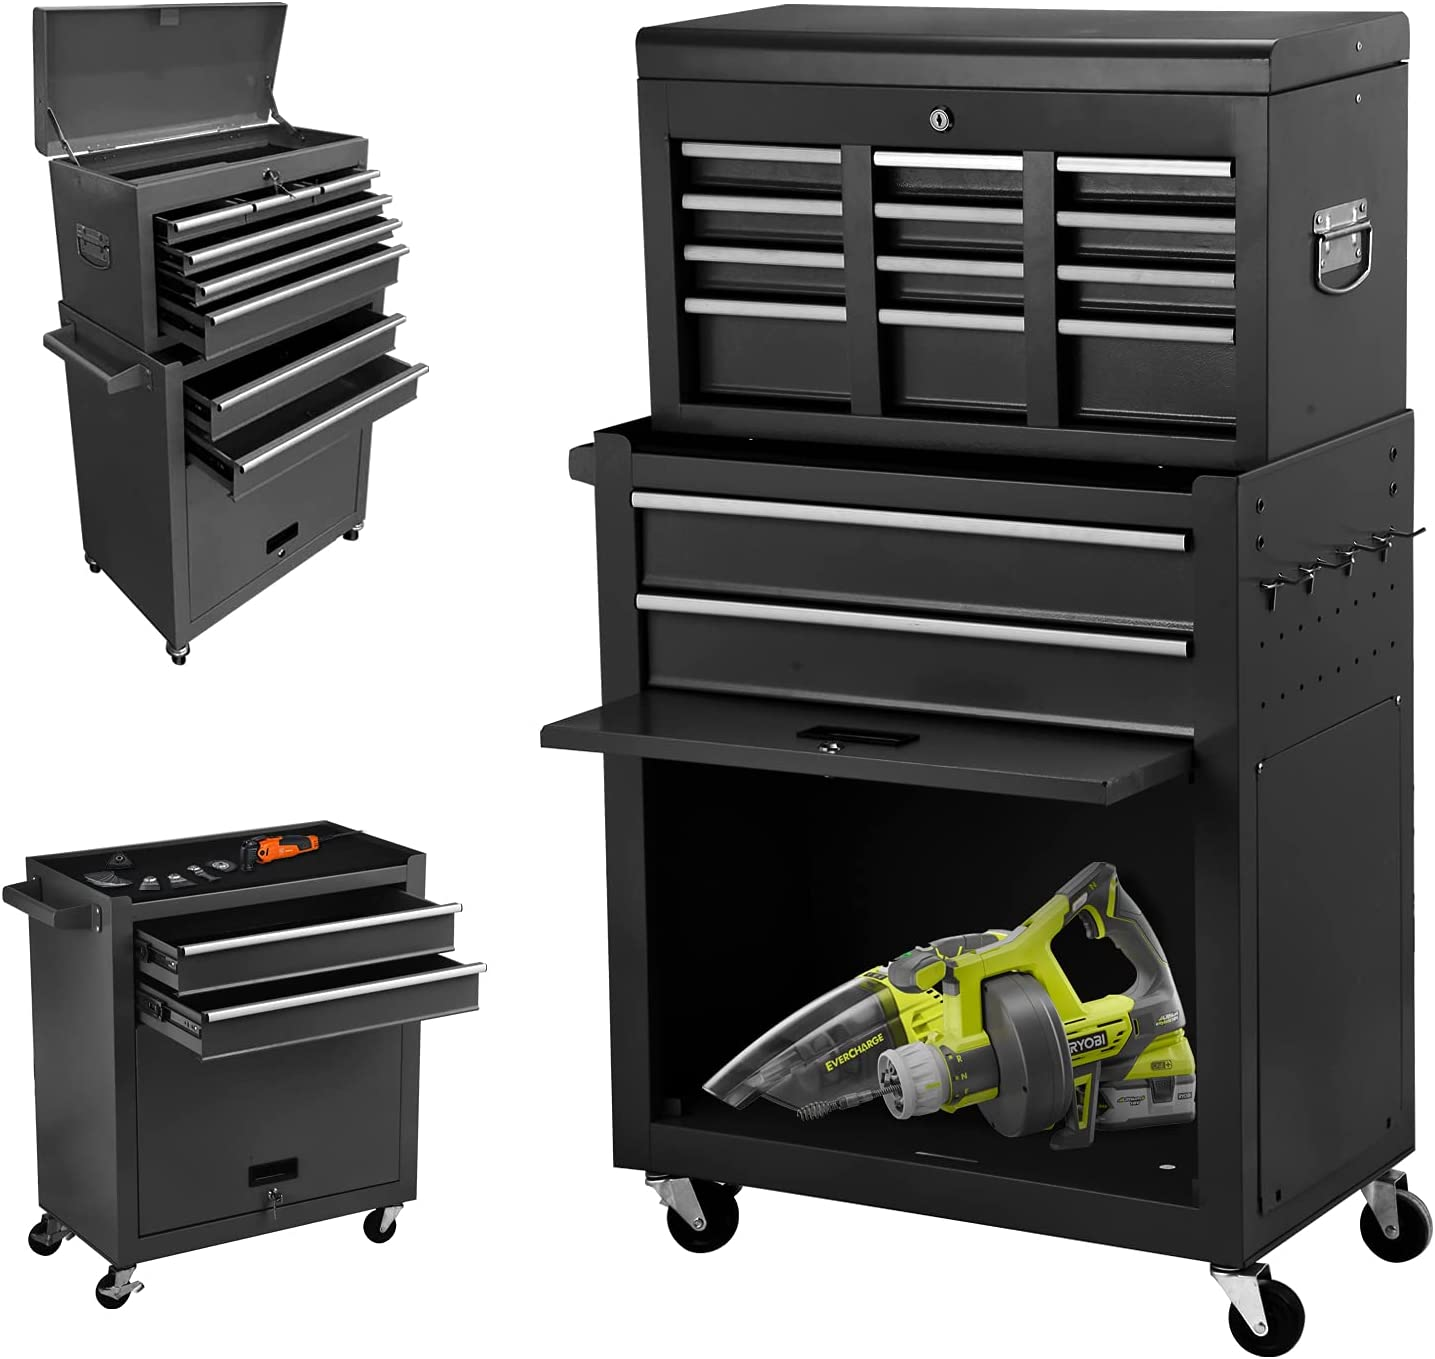 Buy 20 Drawer High Capacity Rolling Tool Chest, Removable Cabinet ...